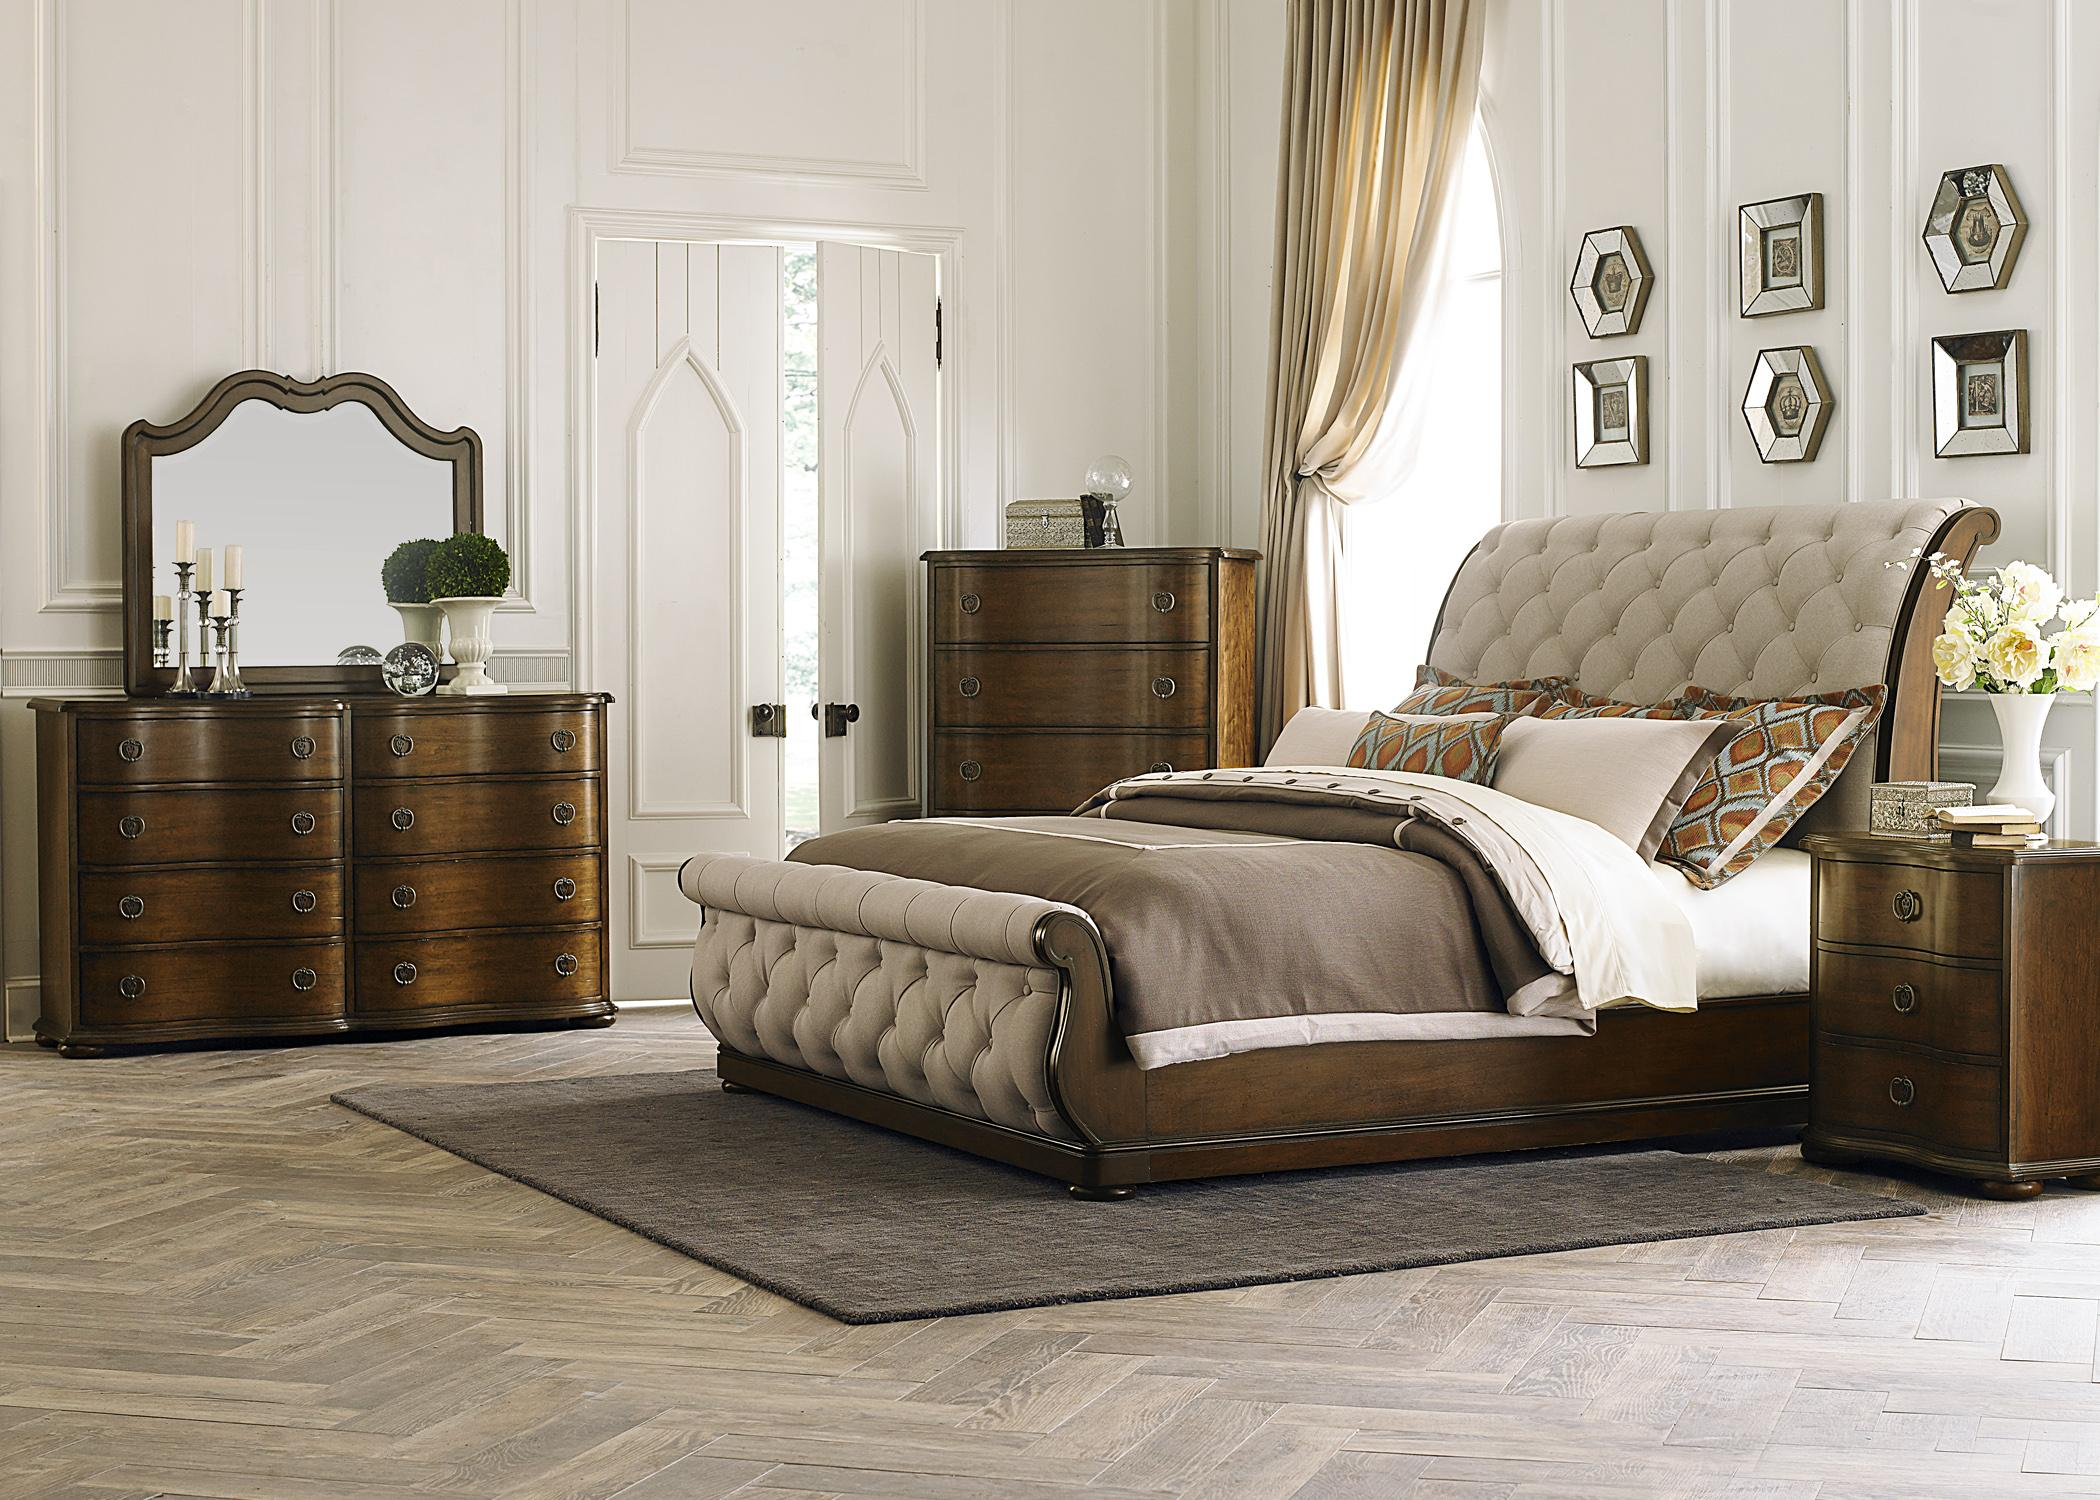 Liberty Furniture Cotswold  King Bedroom Group - Item Number: 545 K Bedroom Group 1